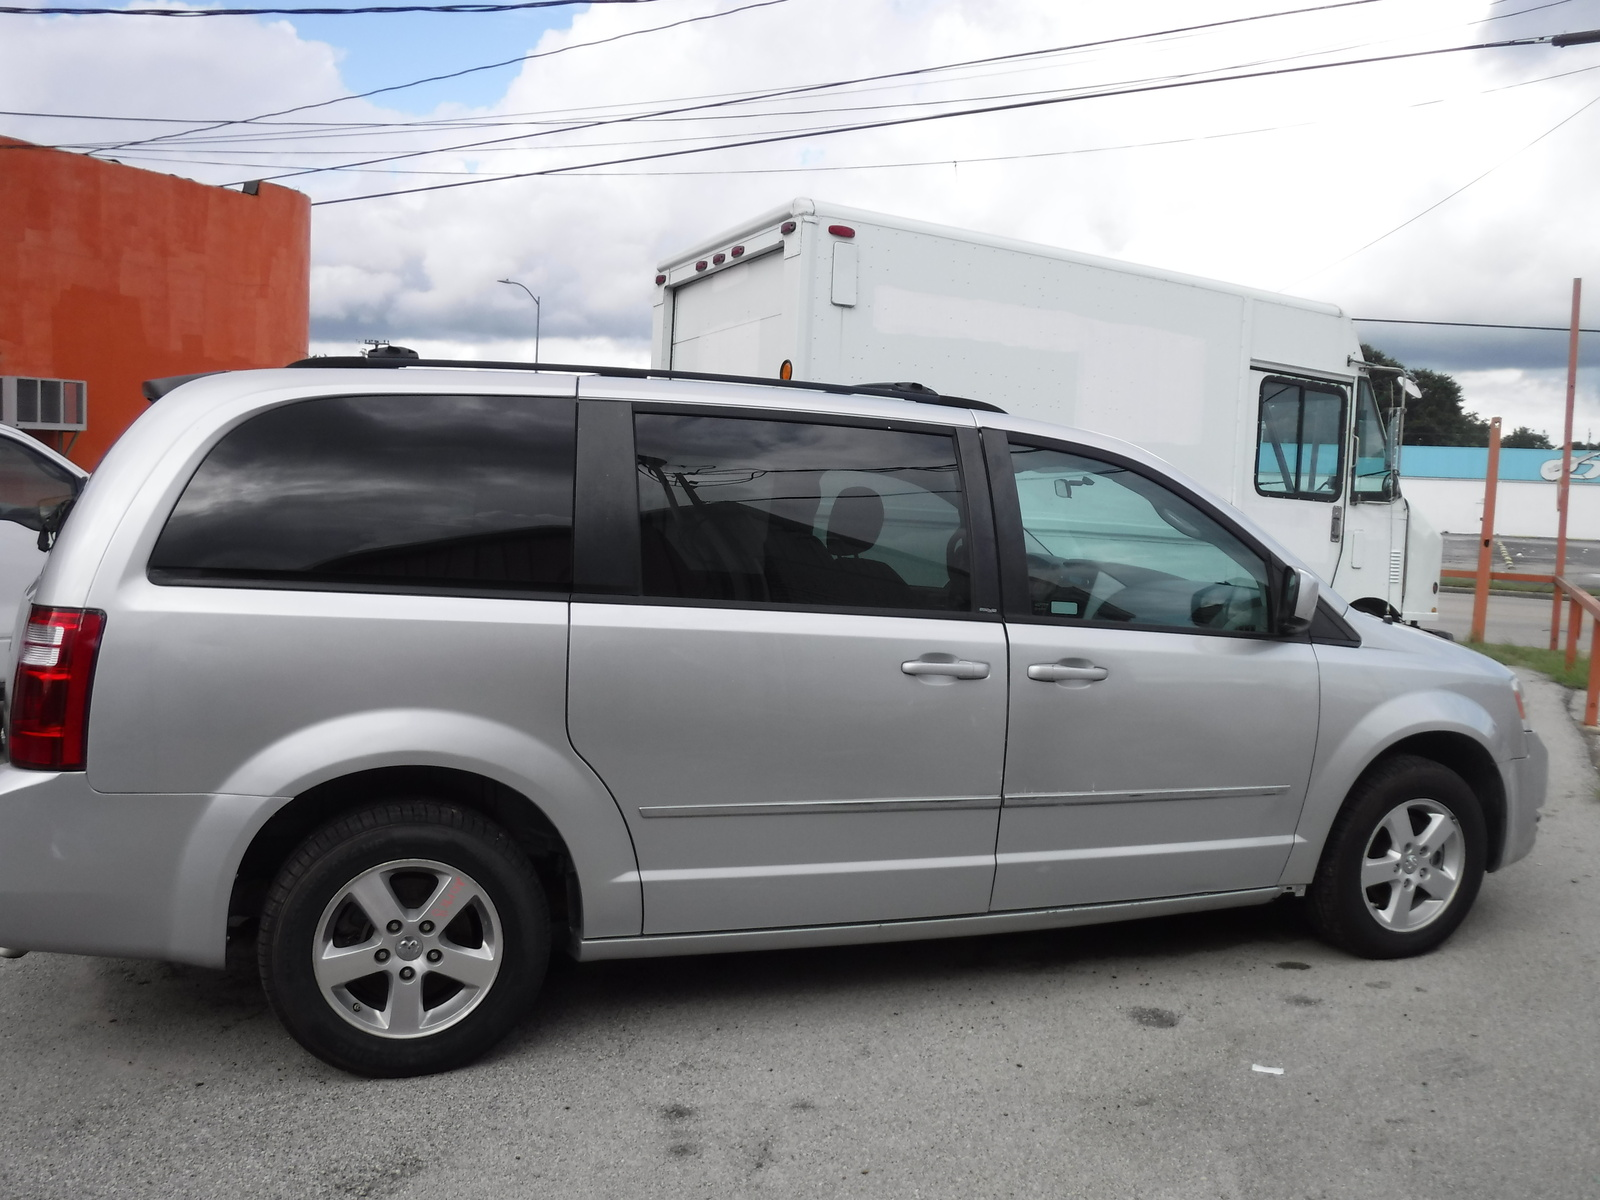 Picture Of 2010 Dodge Grand Caravan, Exterior, Gallery_worthy